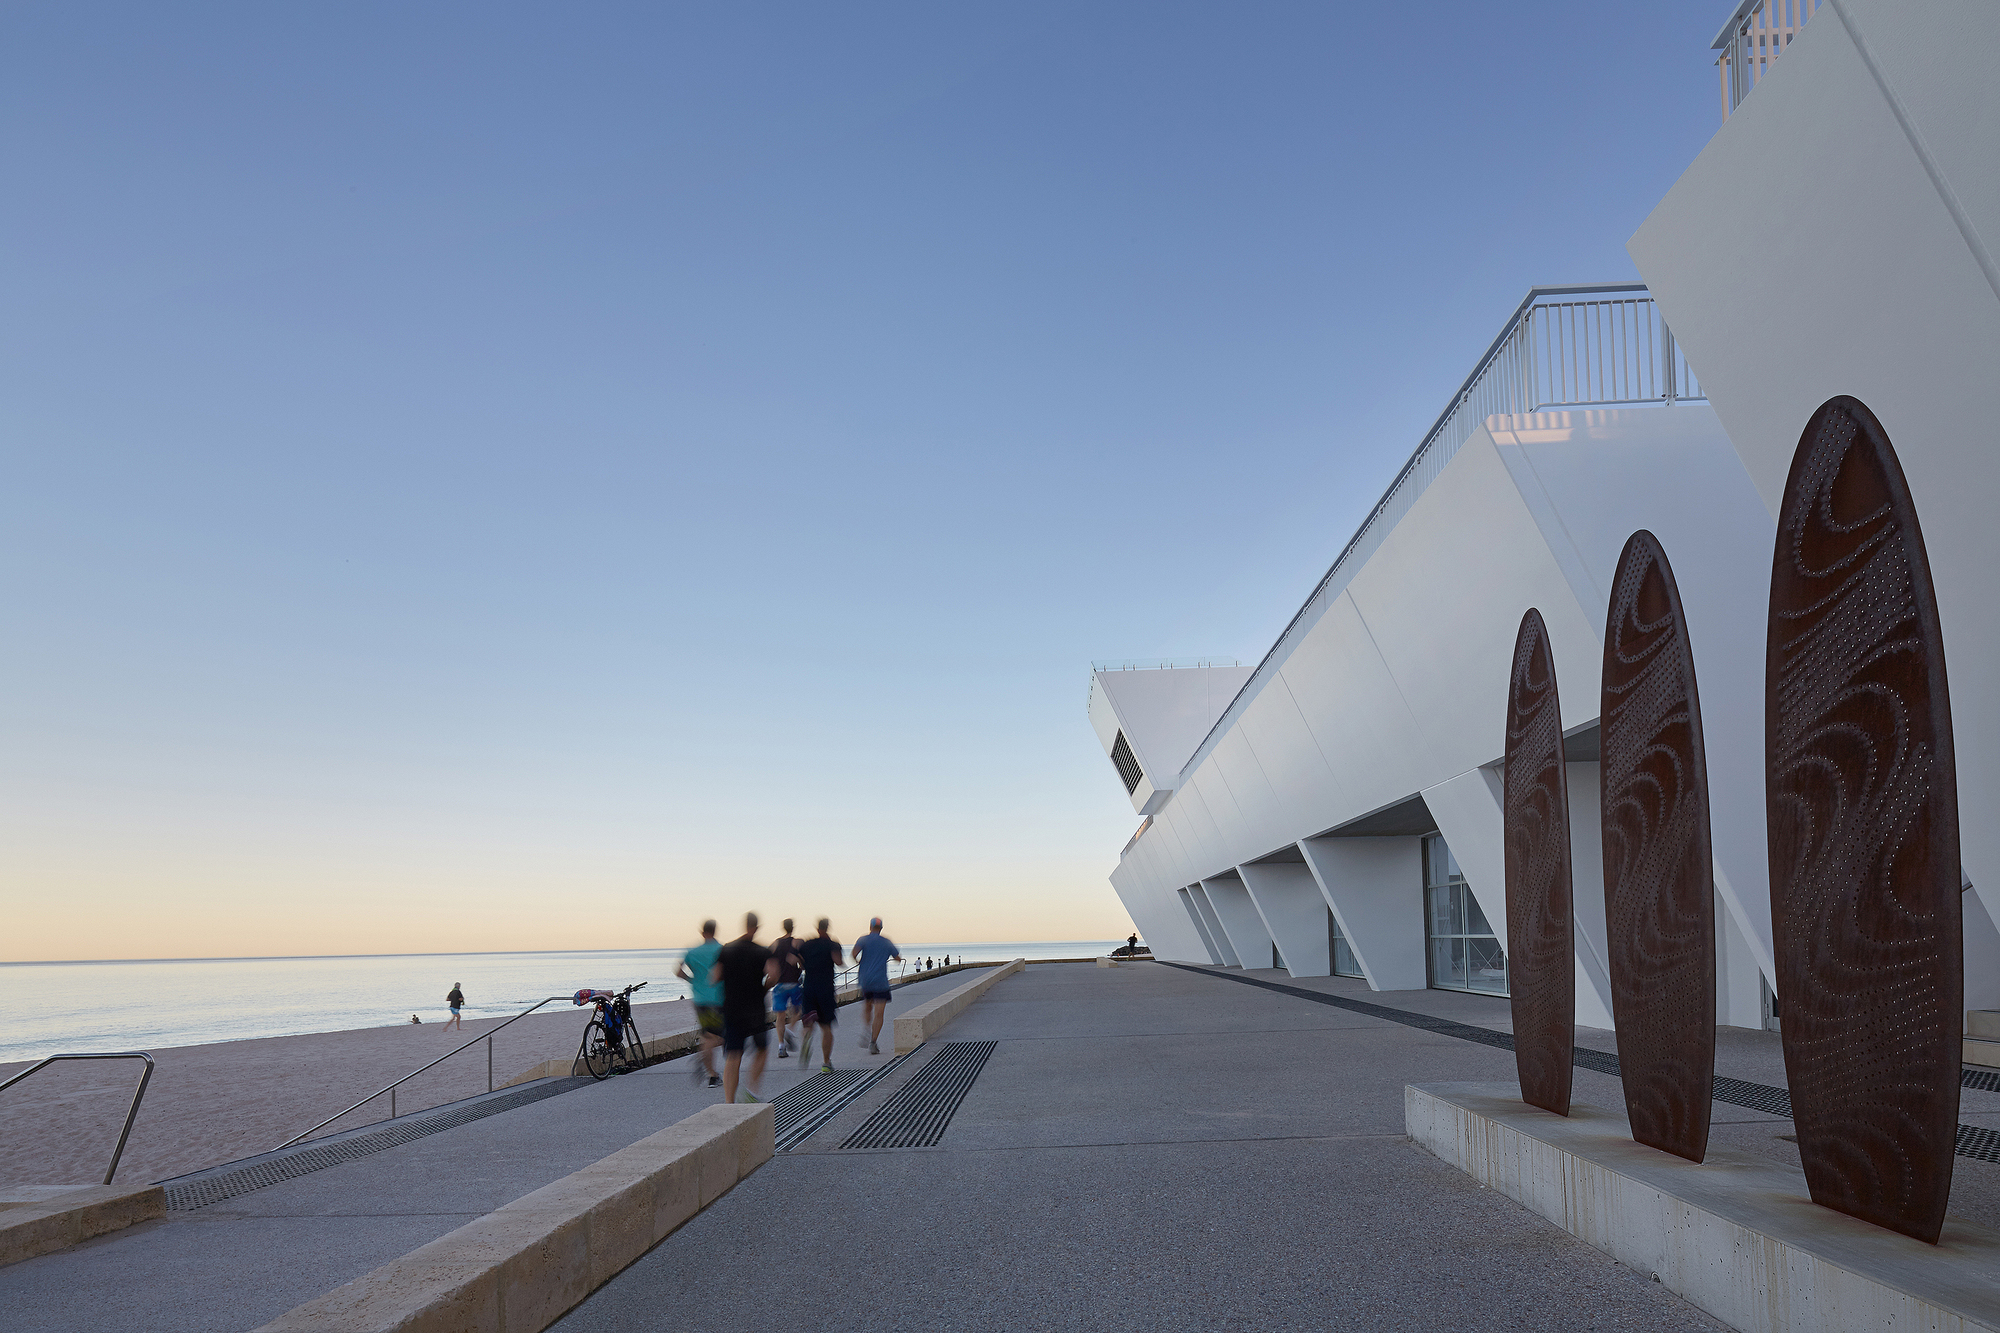 City beach surf club christou design group archdaily for Beach architecture design